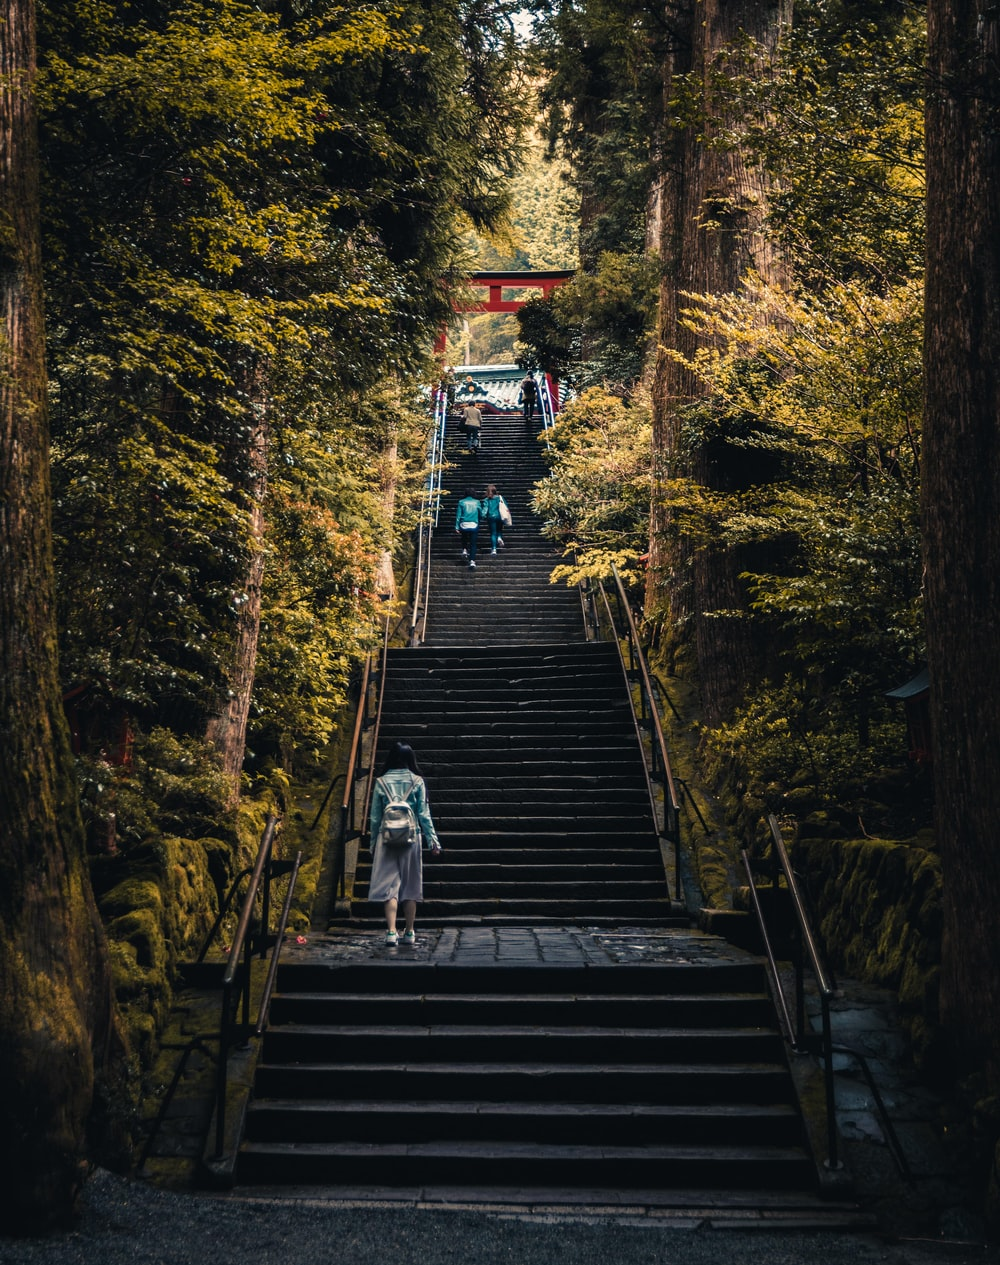 three person walking on stairs between green trees